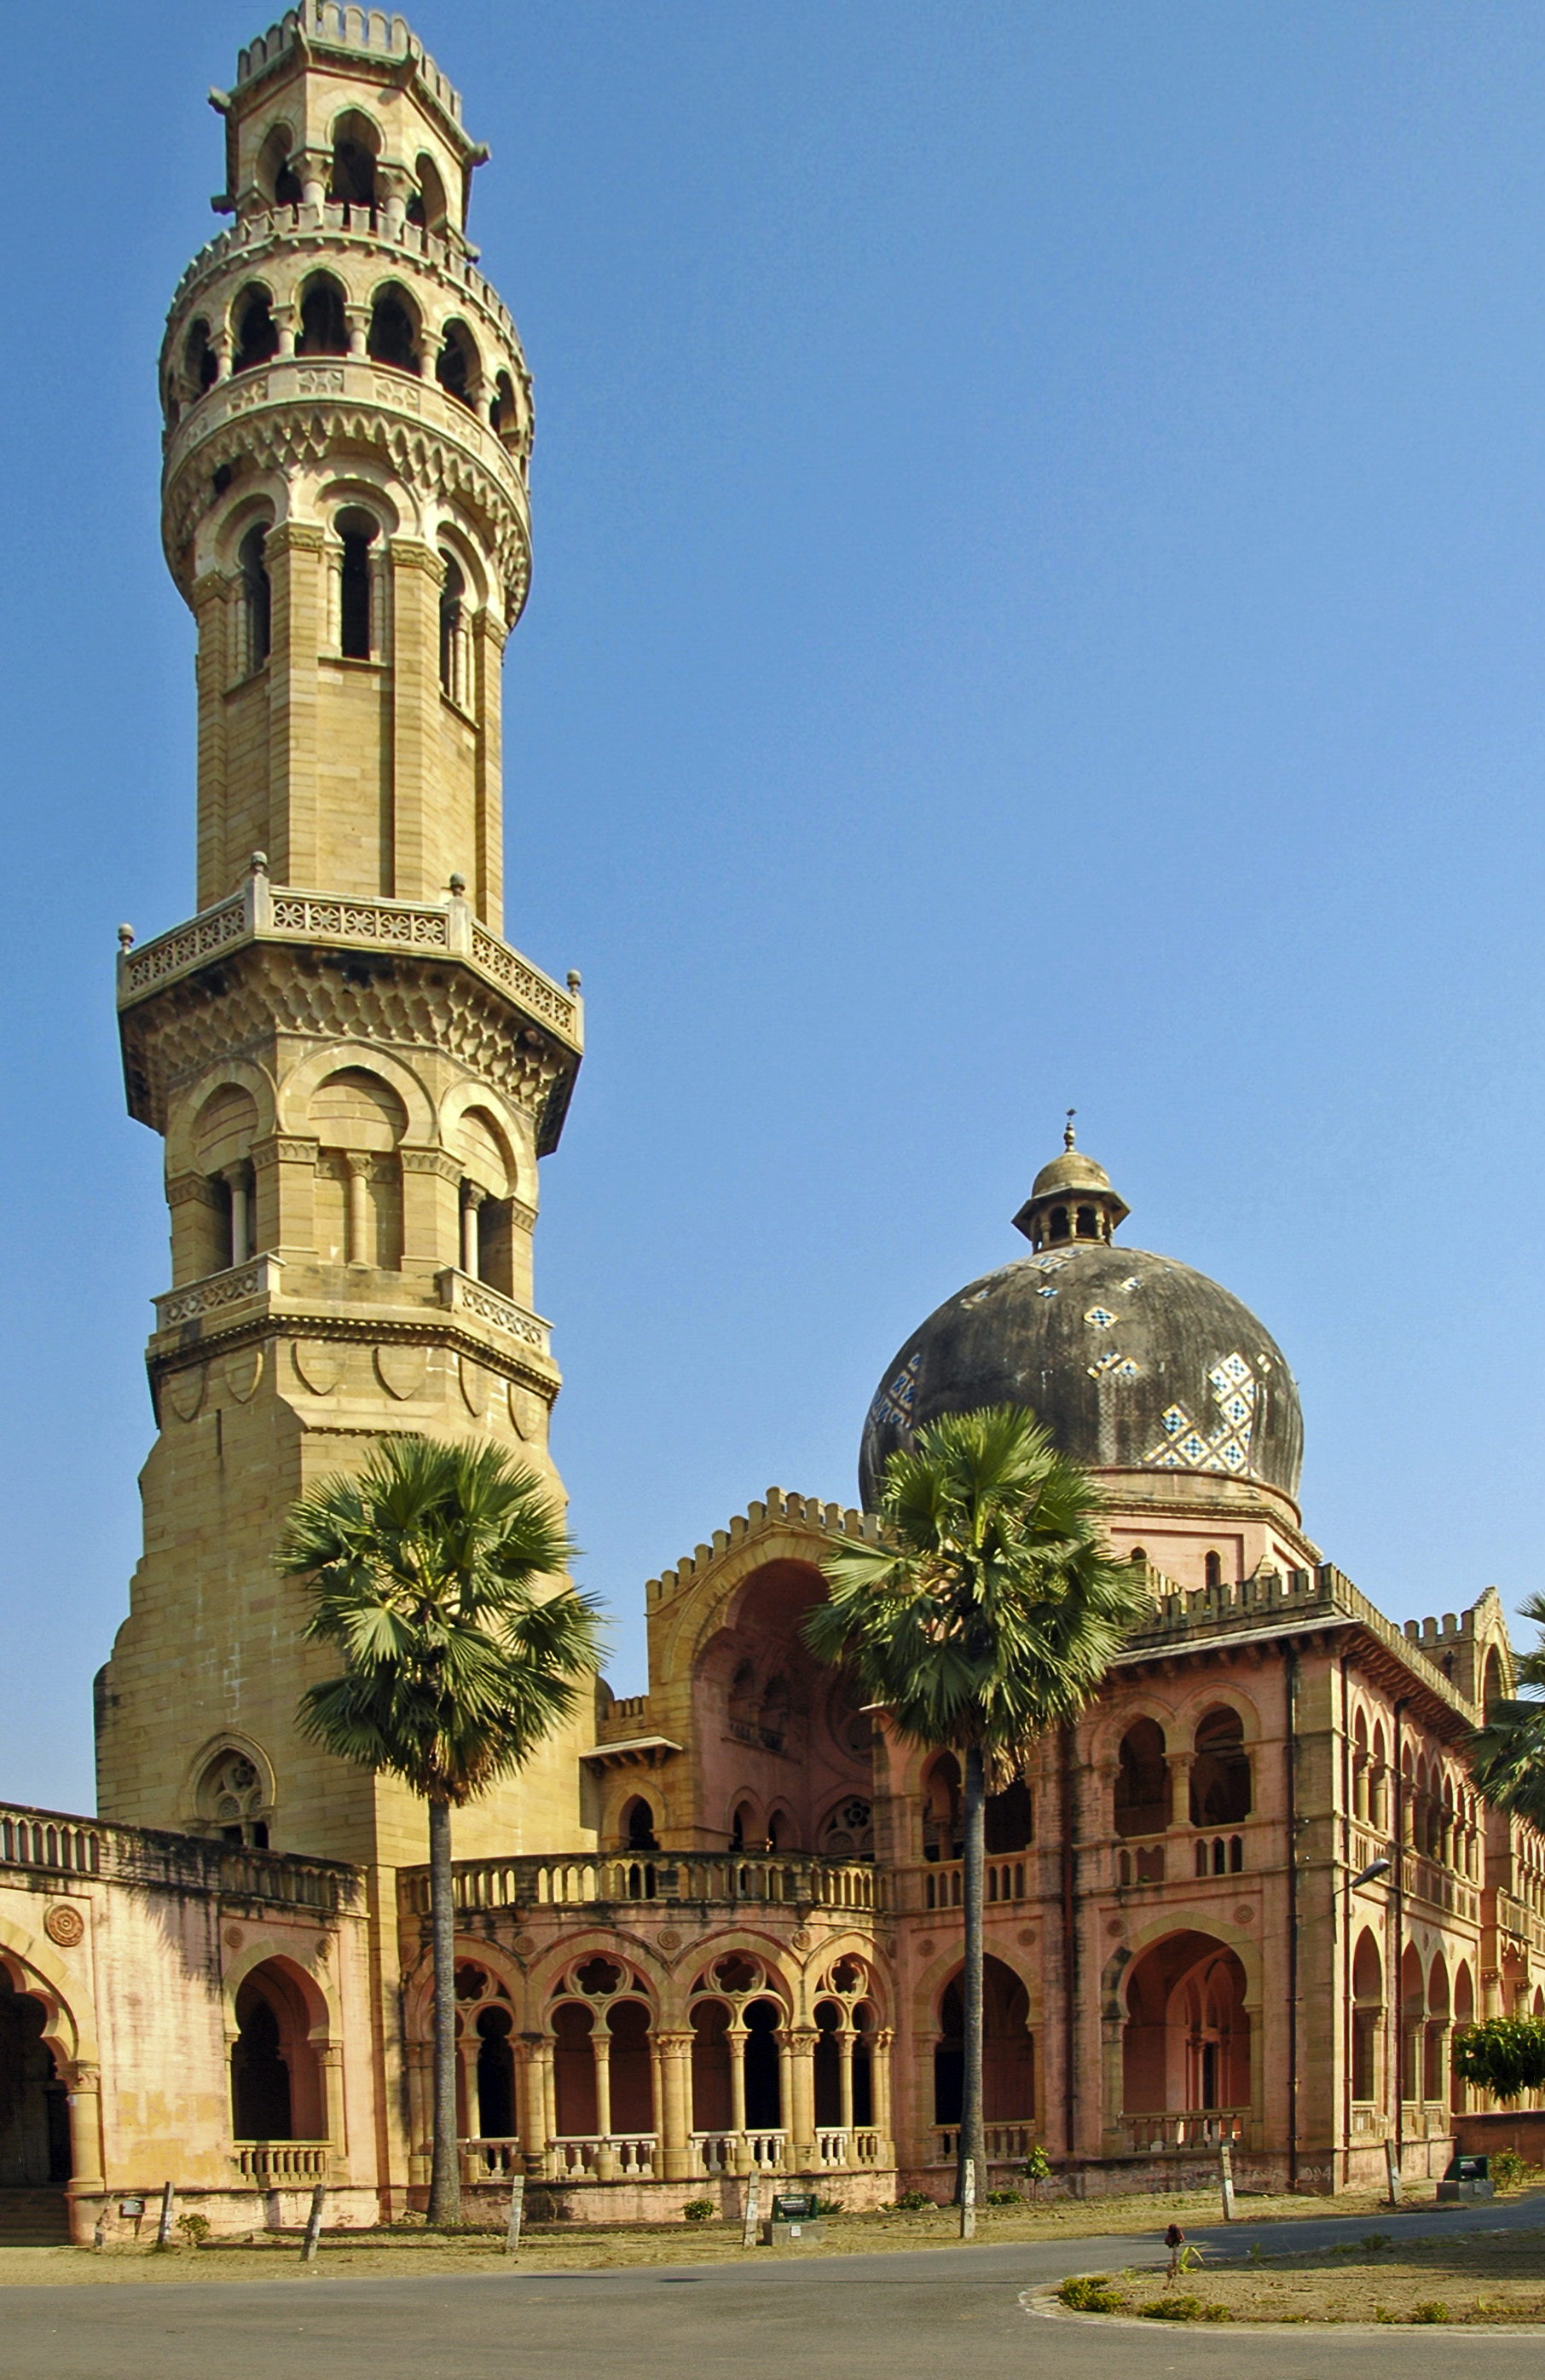 Old red building and tower, with palm trees in front